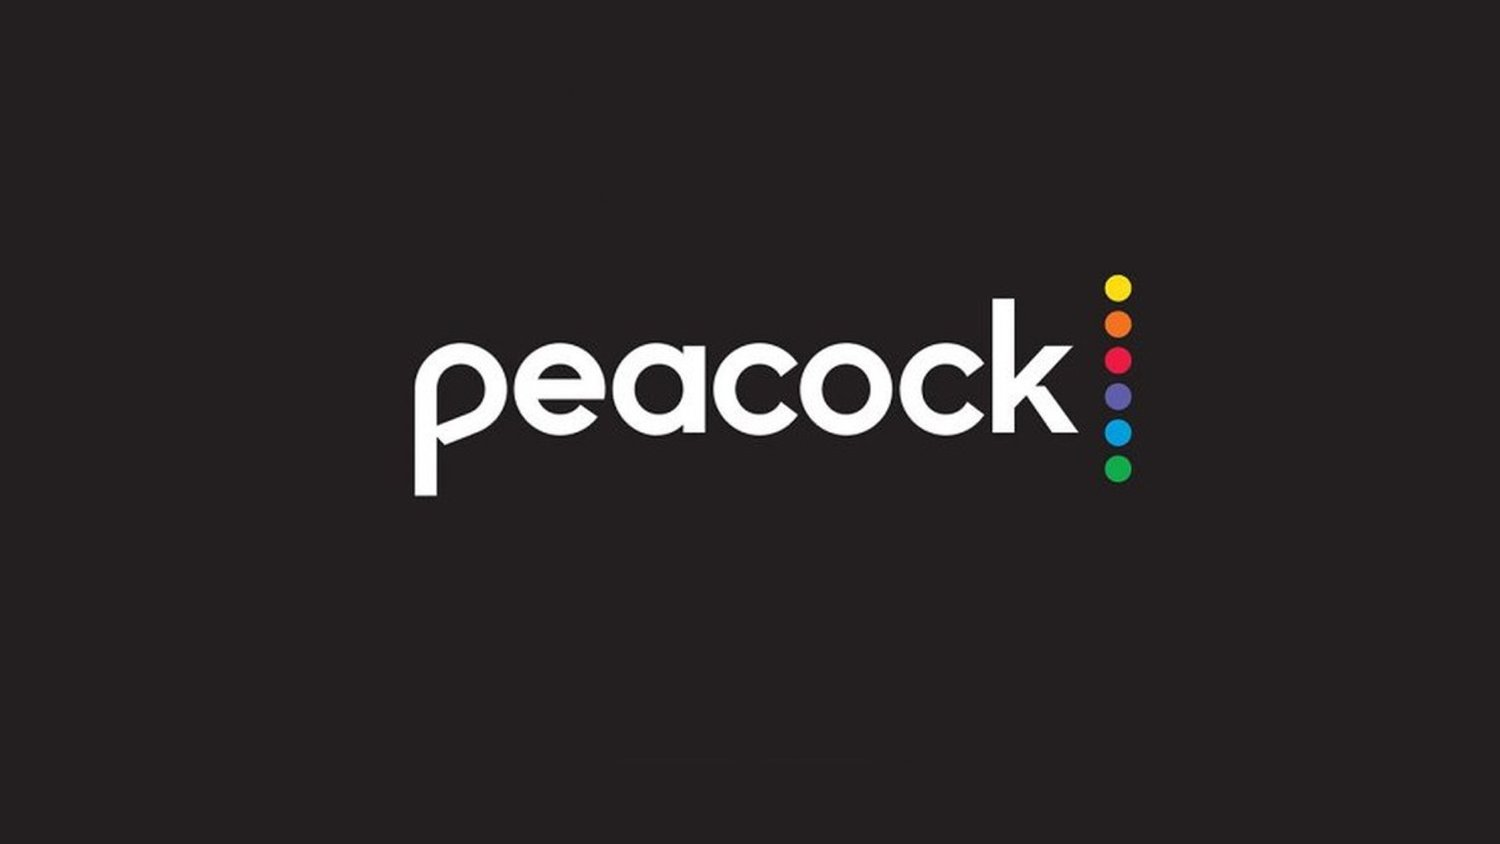 NBCUniversal's Peacock Steaming Service Original Series Slate, Catalogue Shows, Library Movies, and Launch Date